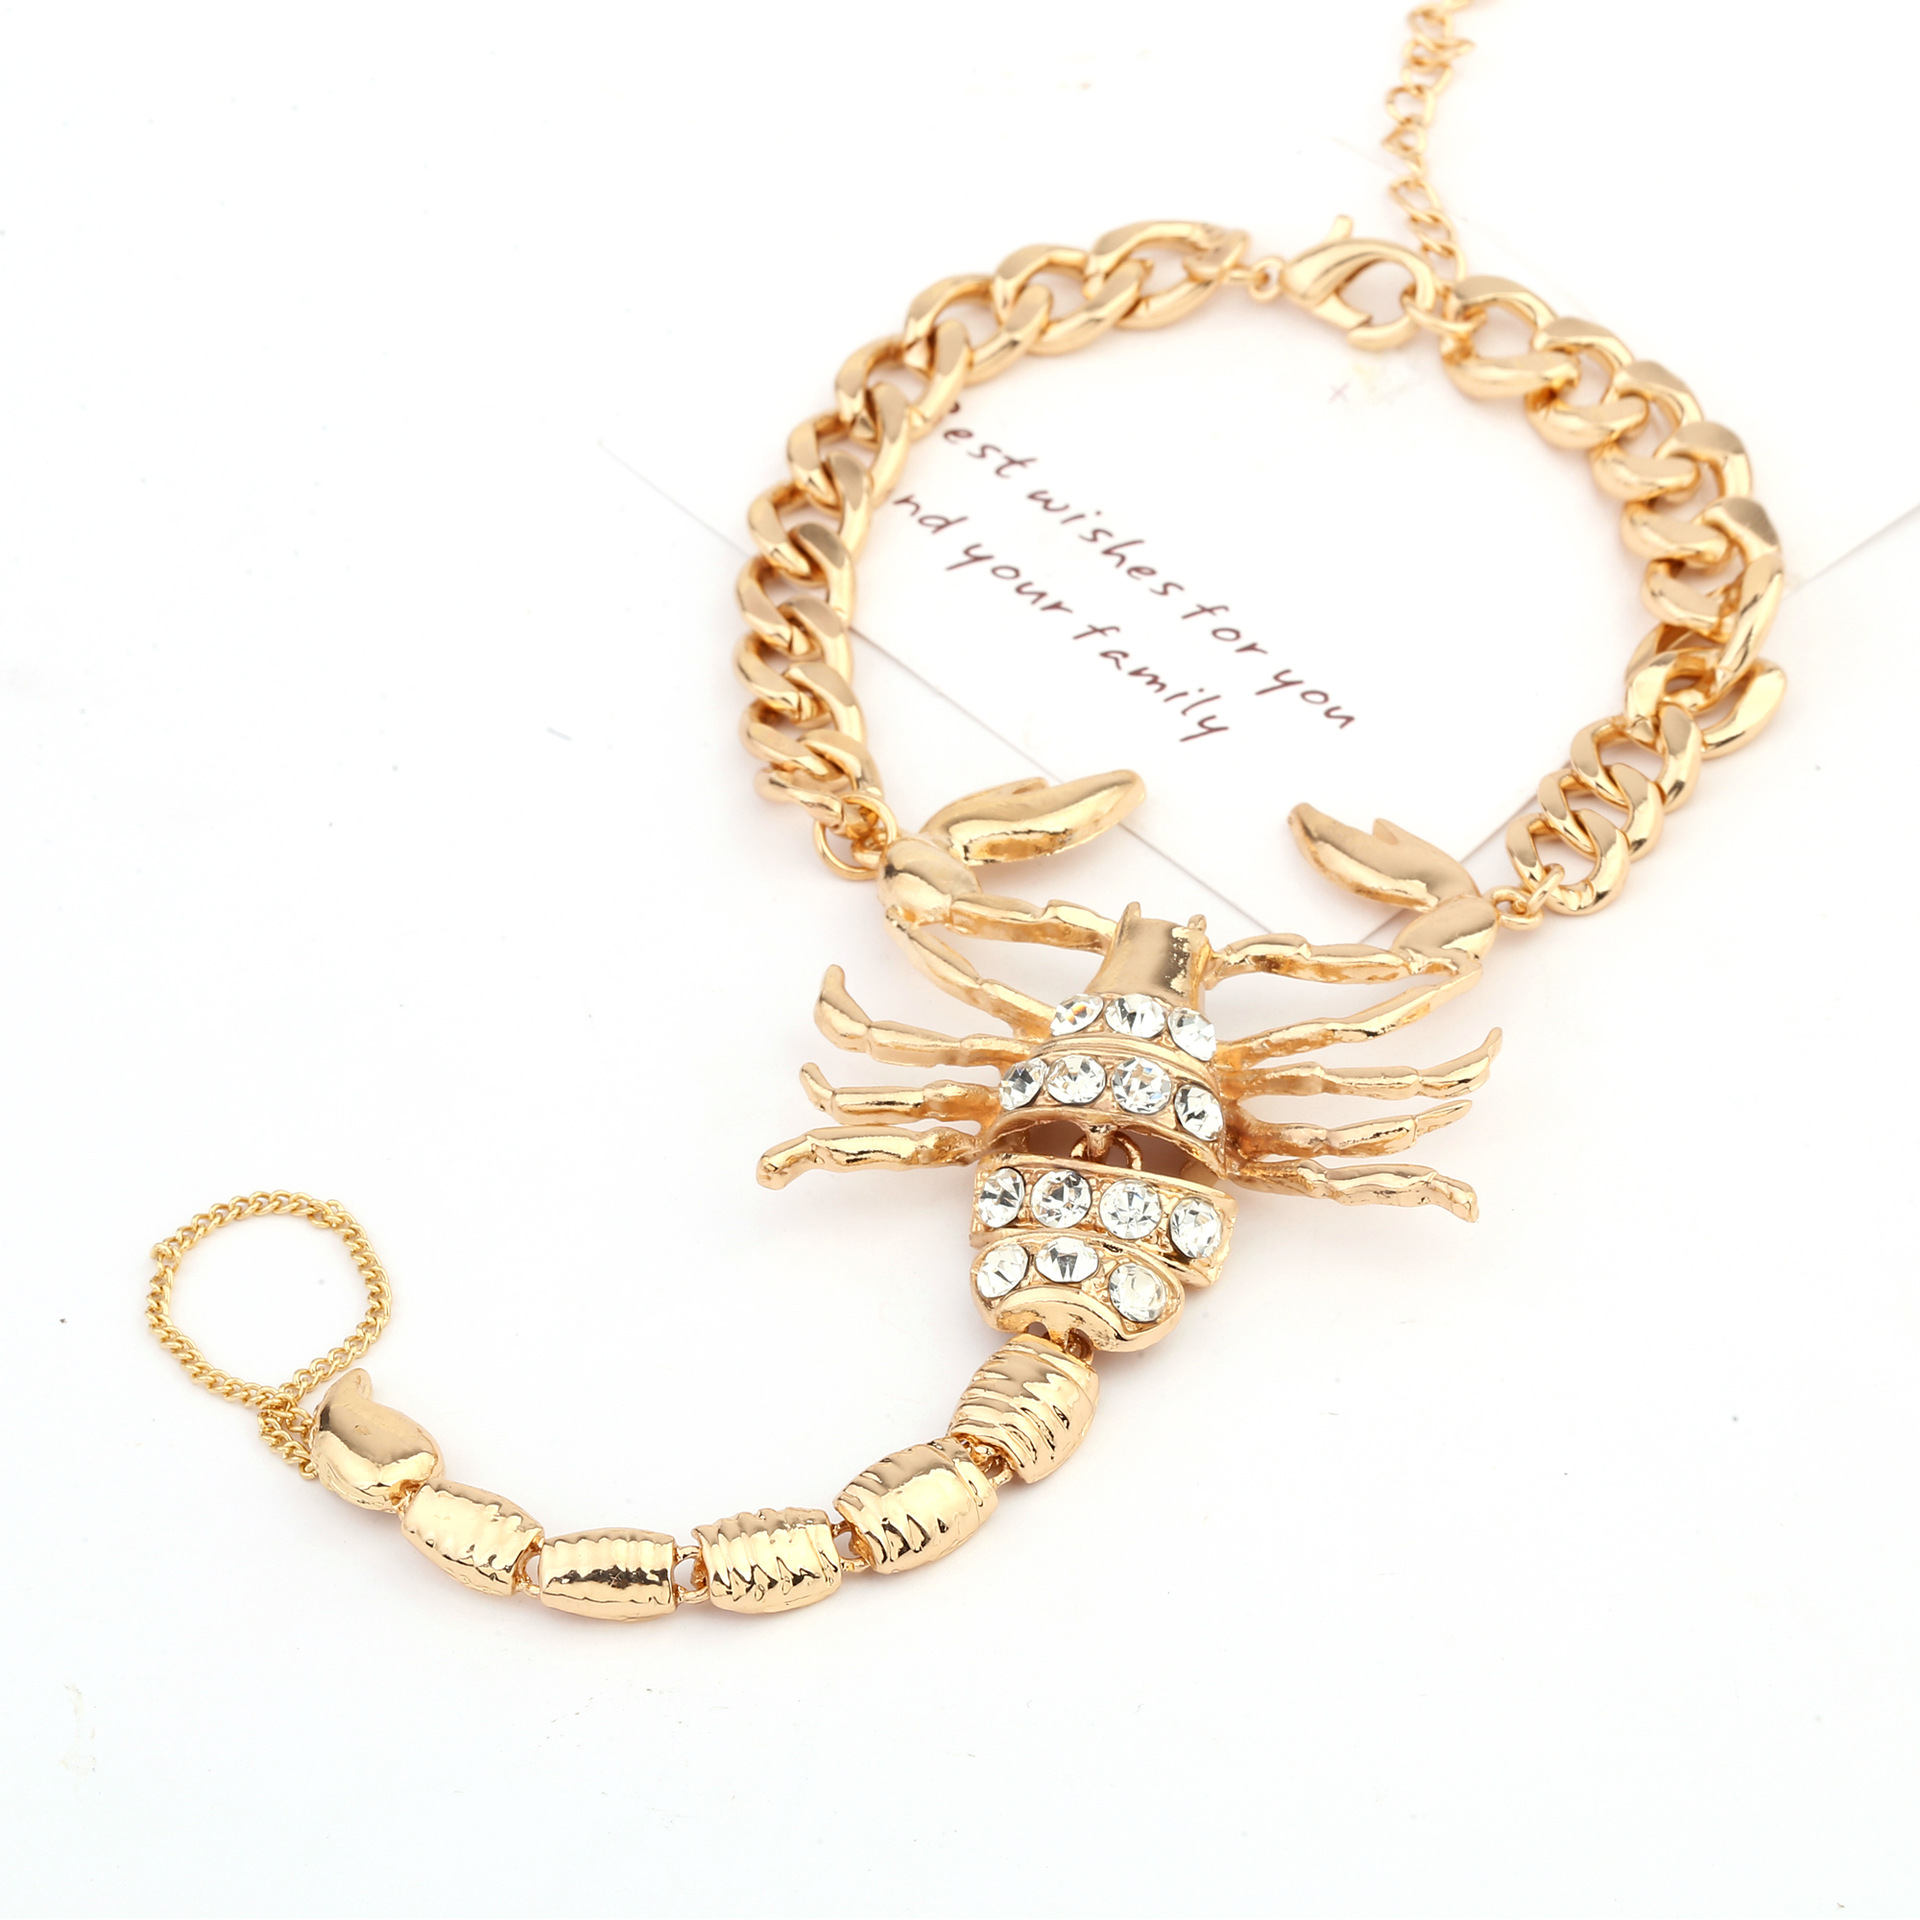 anklets beach perfect now shop jewelry wedding amerita foot beautiful elegant the anklet pin